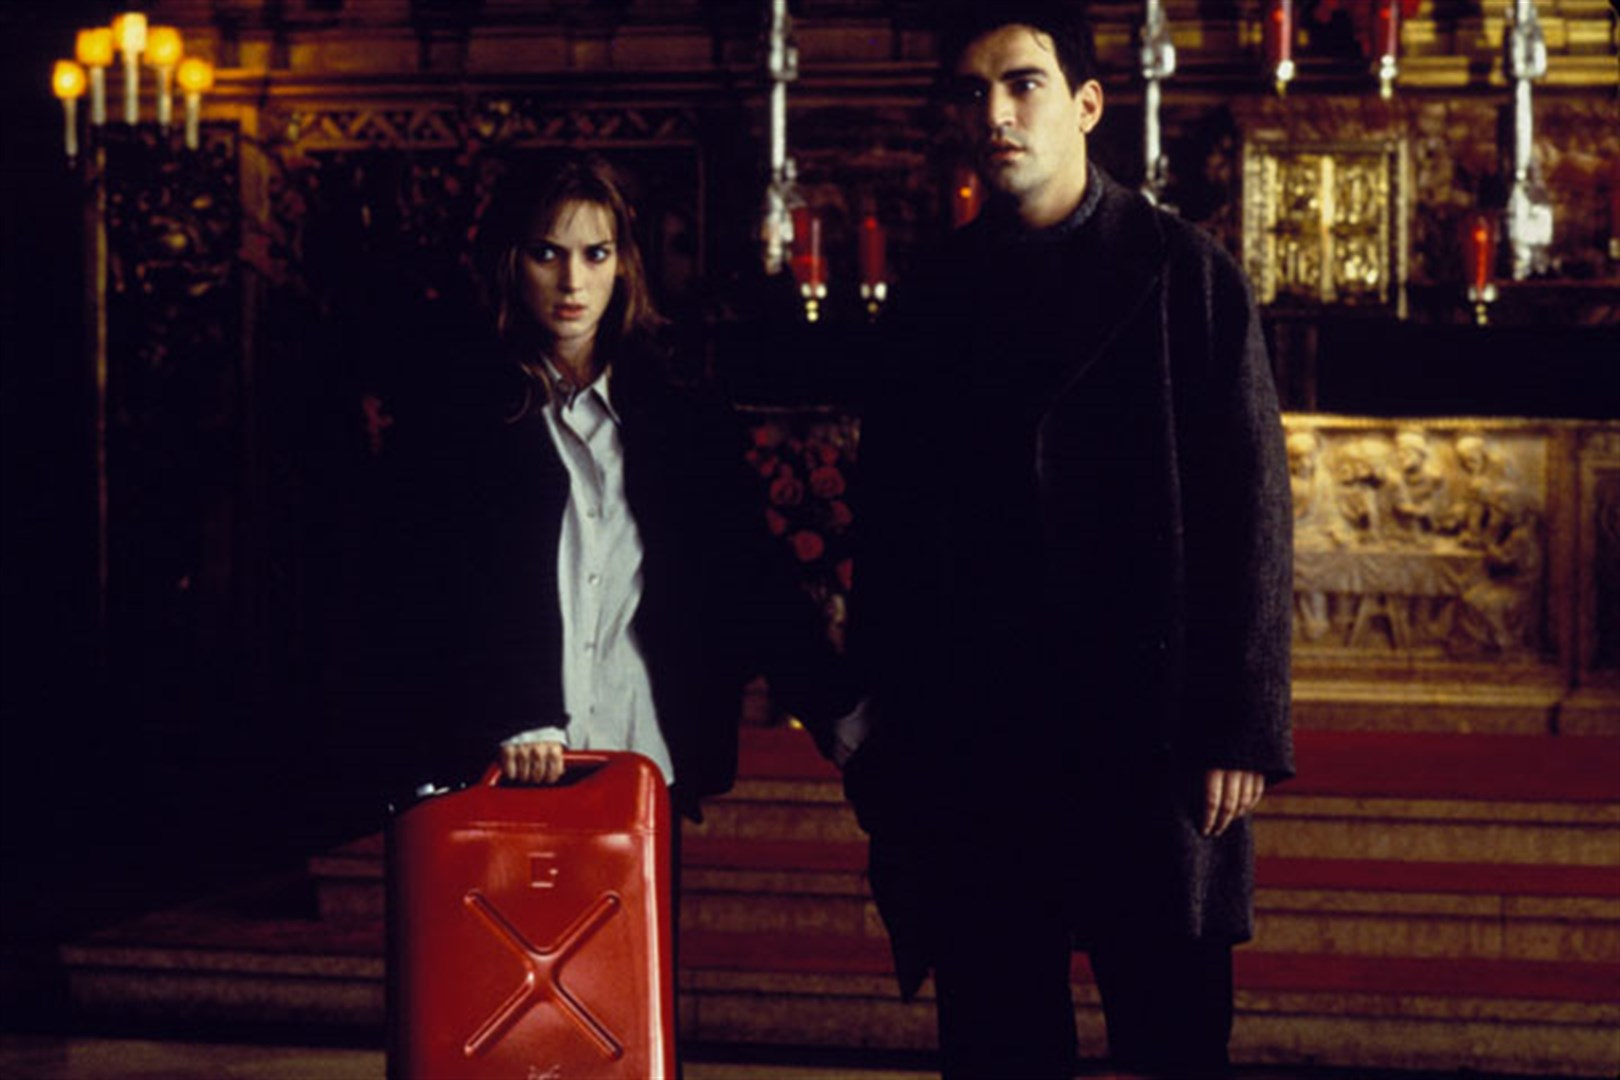 Winona Ryder and Ben Chaplin - facing the coming of the Anti-Christ in Lost Souls (2000)